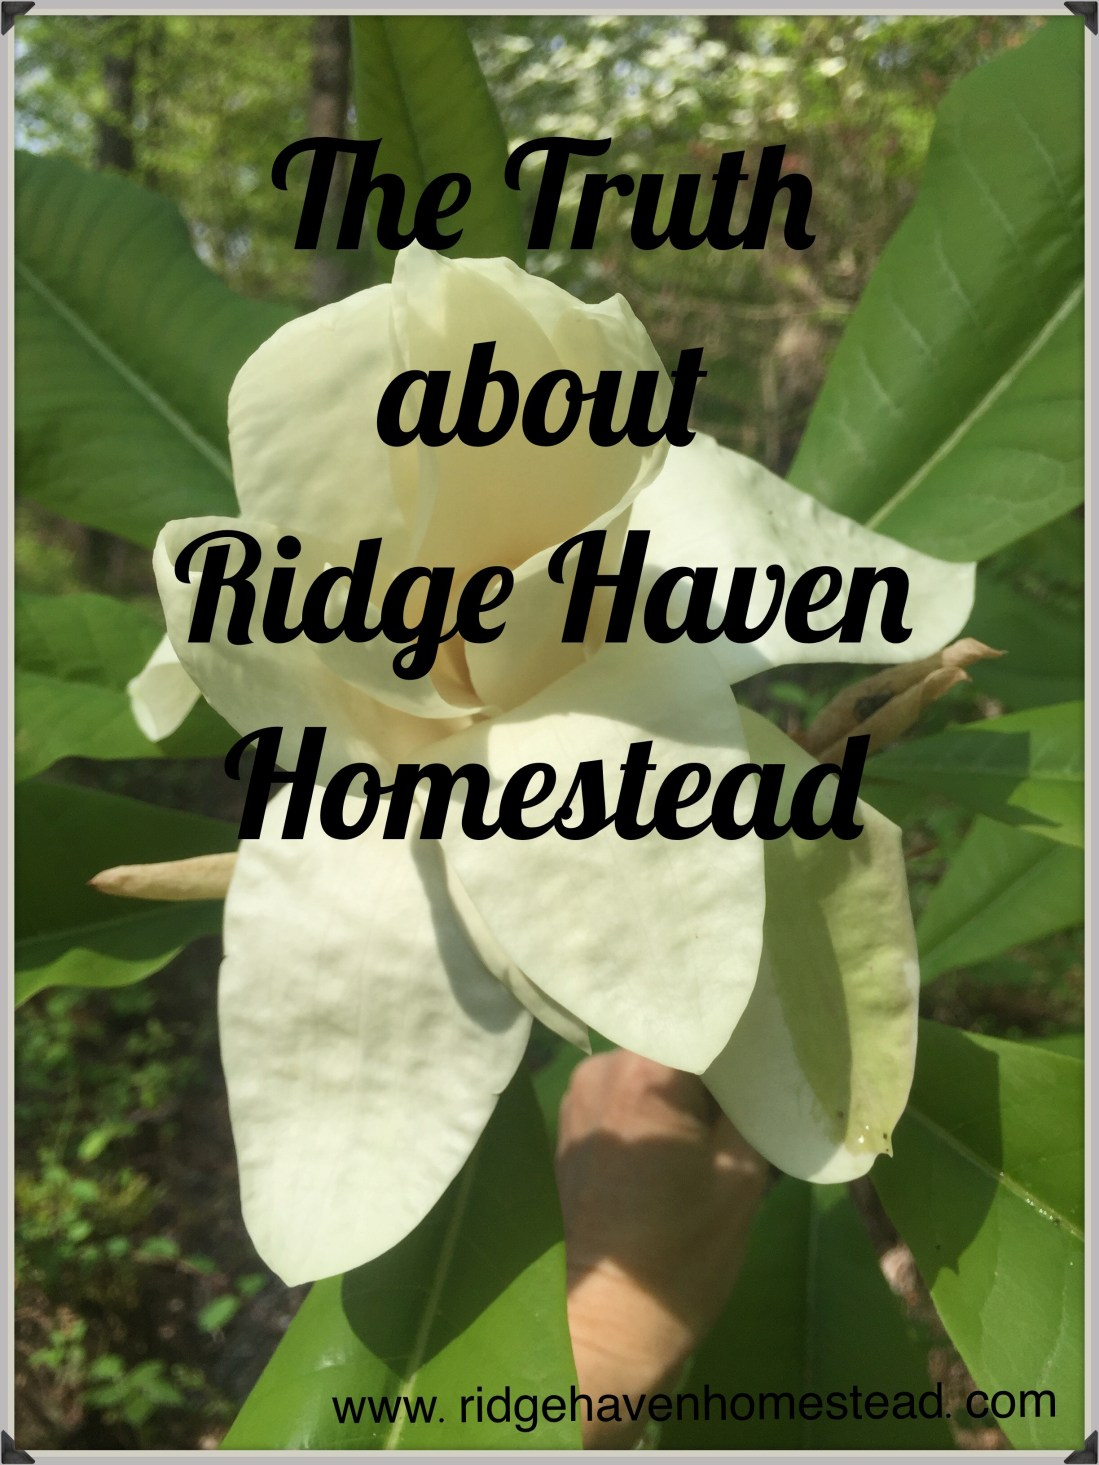 Ridge Haven Homestead.  Hope